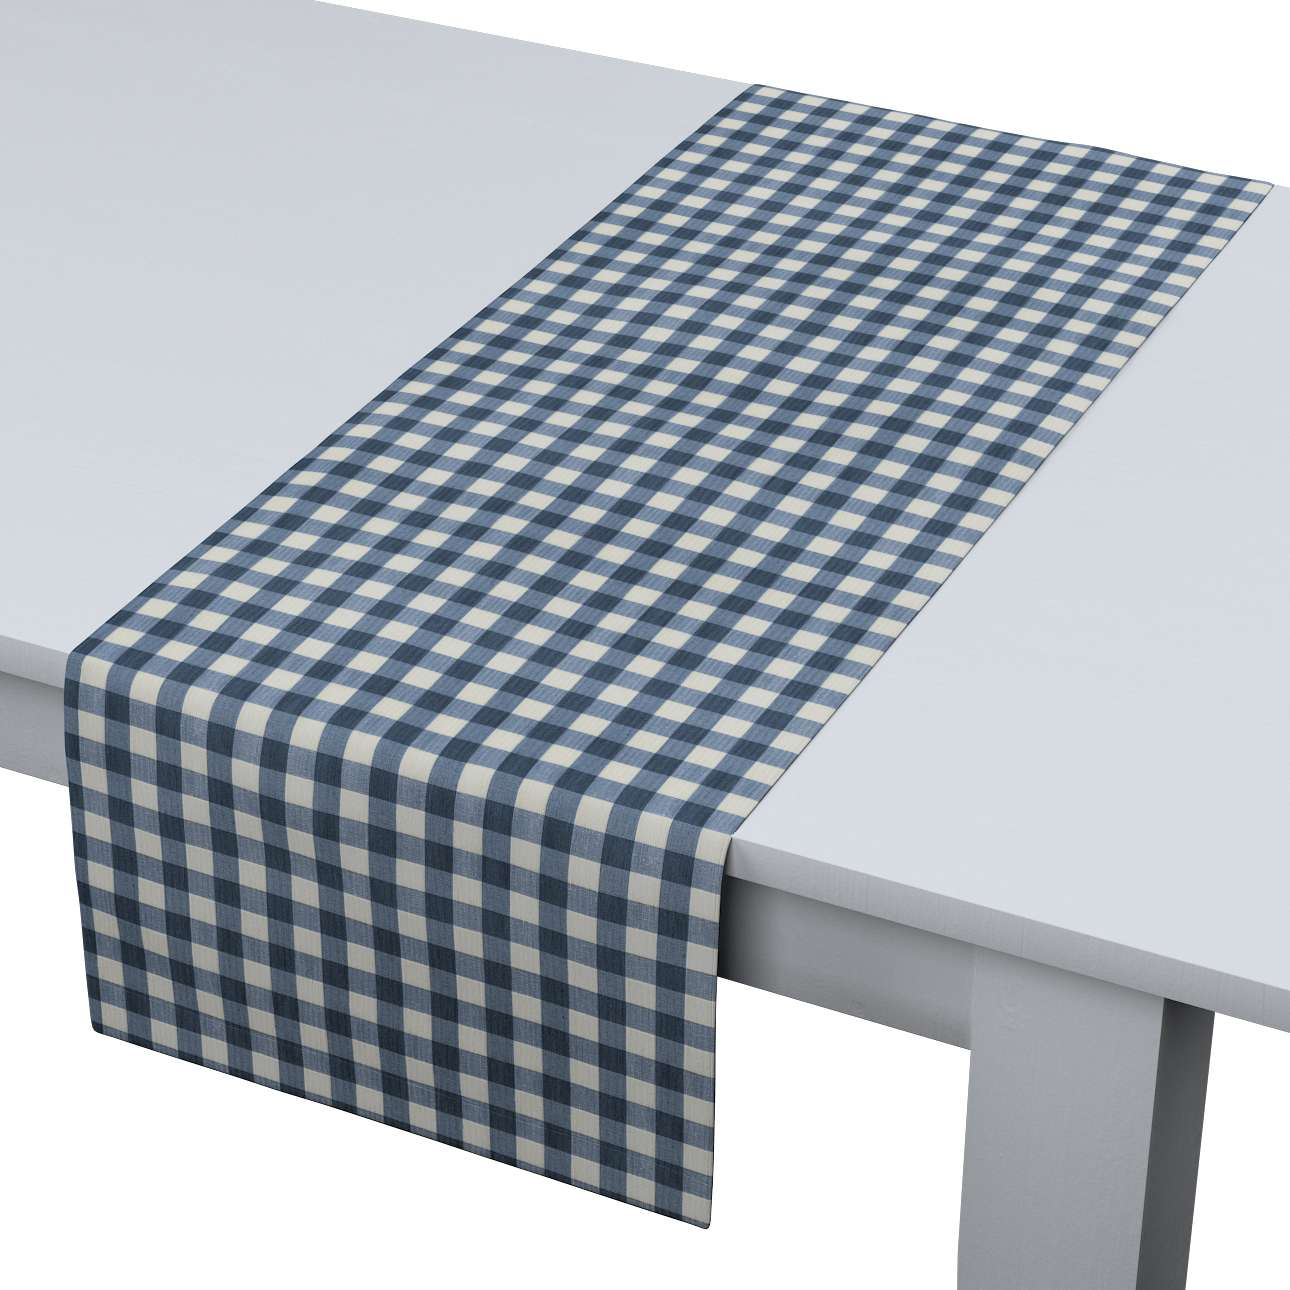 Table runner in collection Quadro, fabric: 136-01